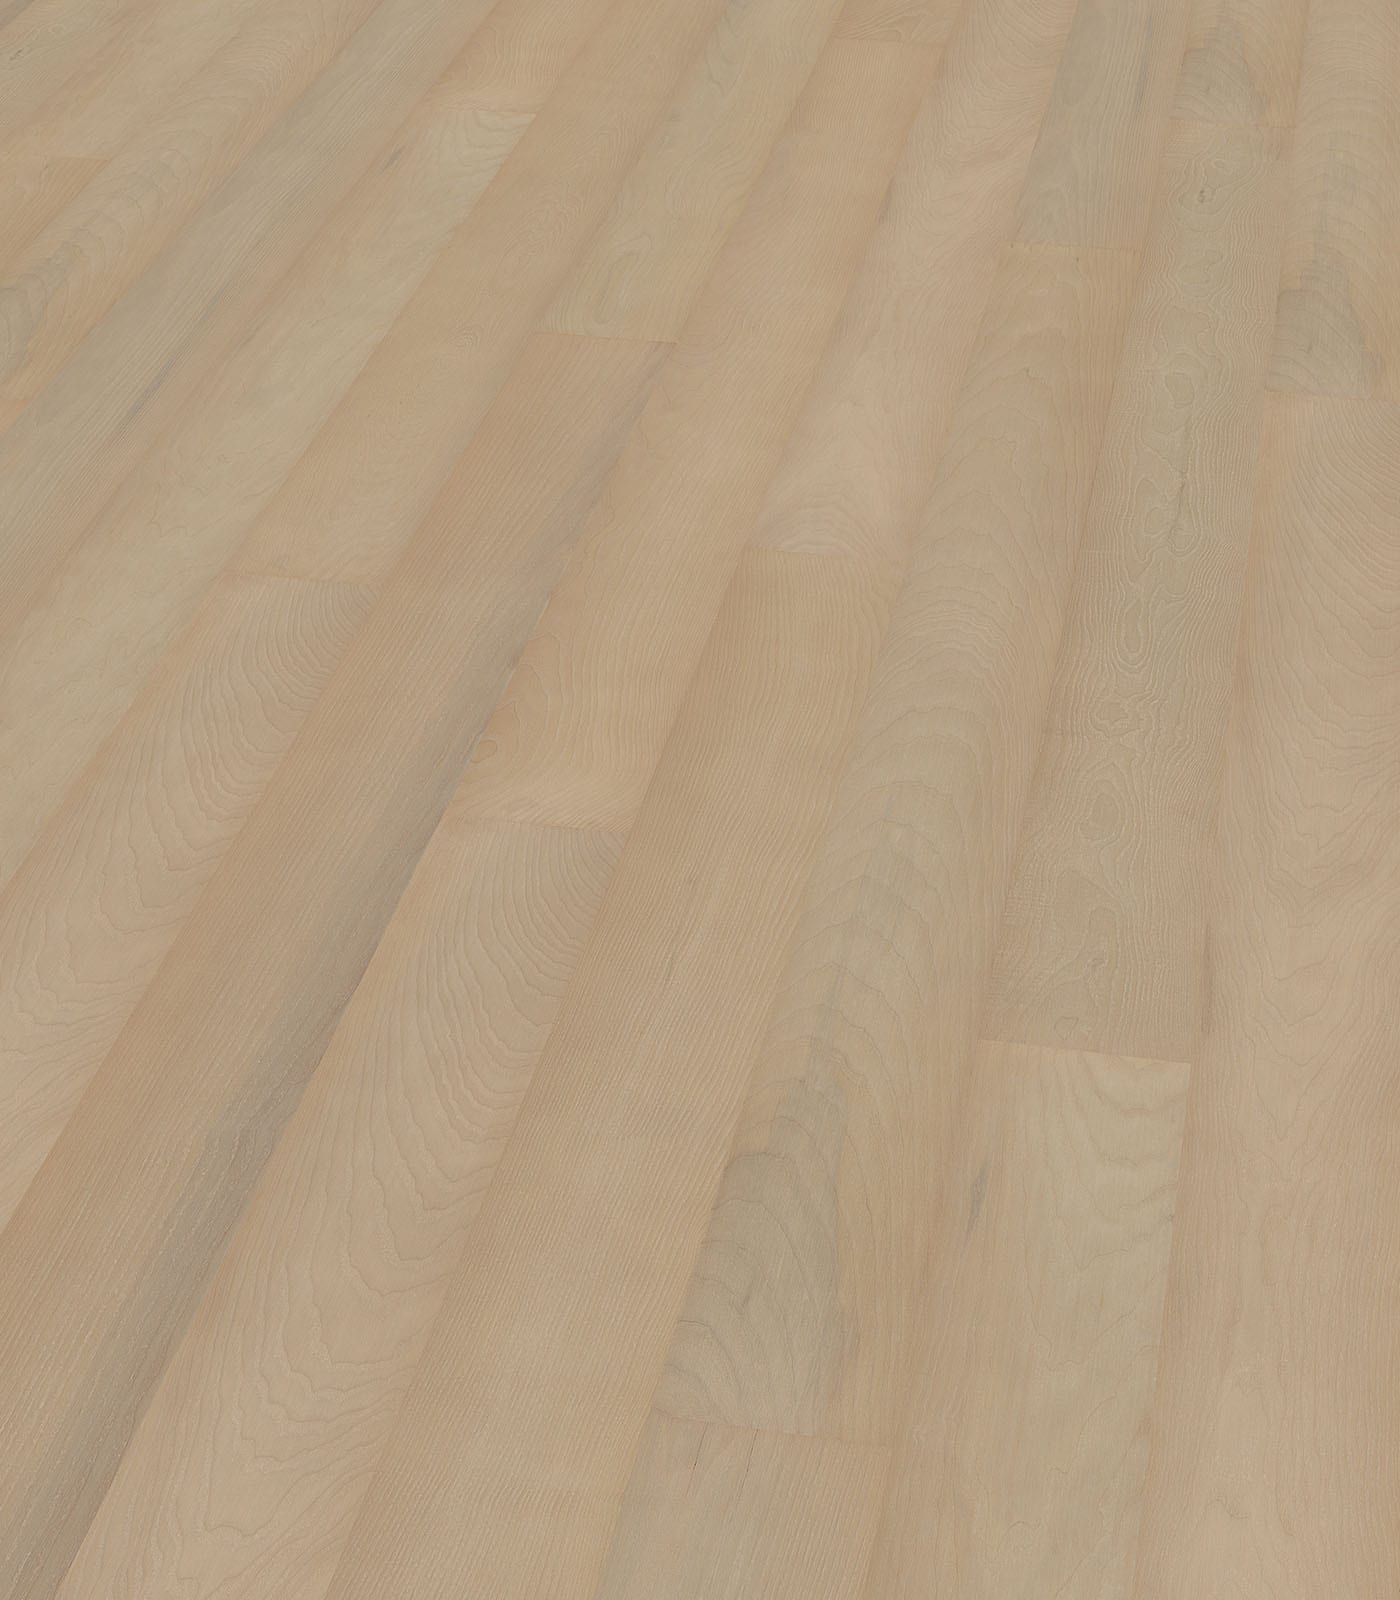 Berlin-European Ash floors-After Oak Collection - angle